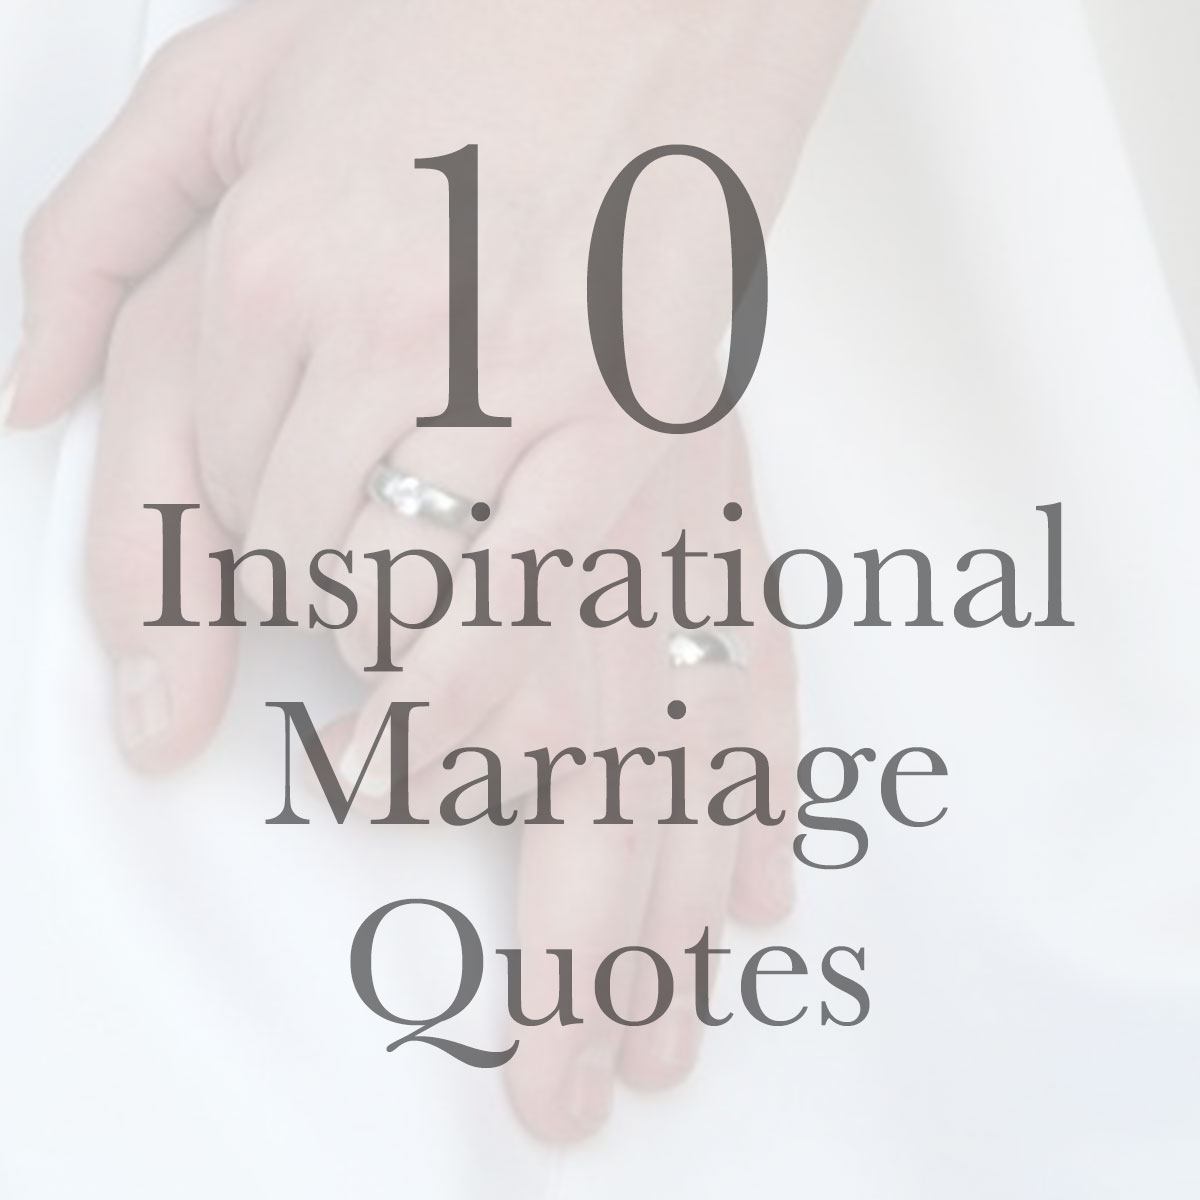 Short Love Quotes For Marriage | Hover Me